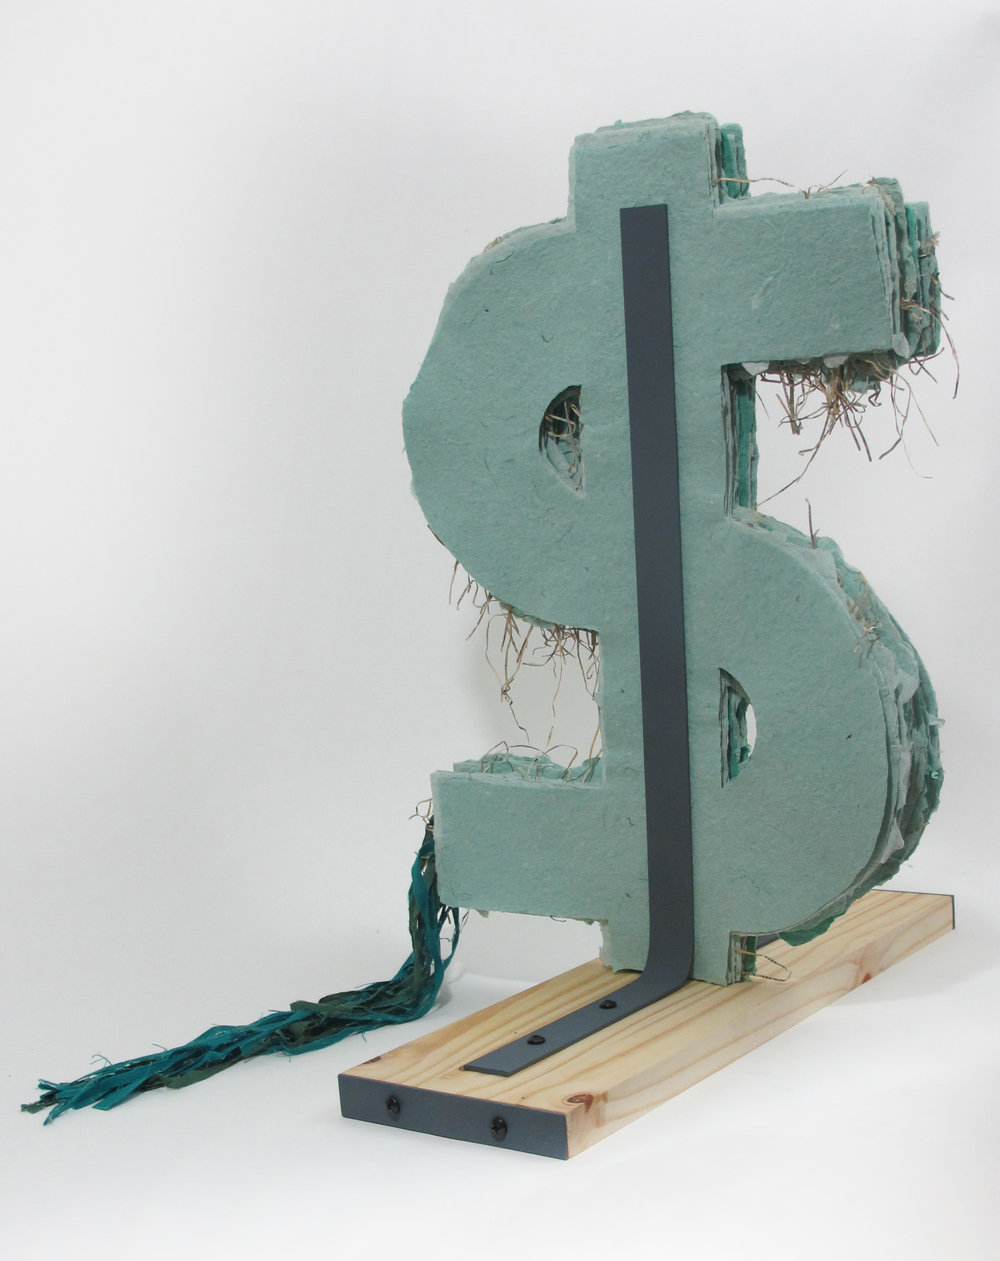 E Unim Pluribus , 2013, handmade paper with shredded money and rag pulp